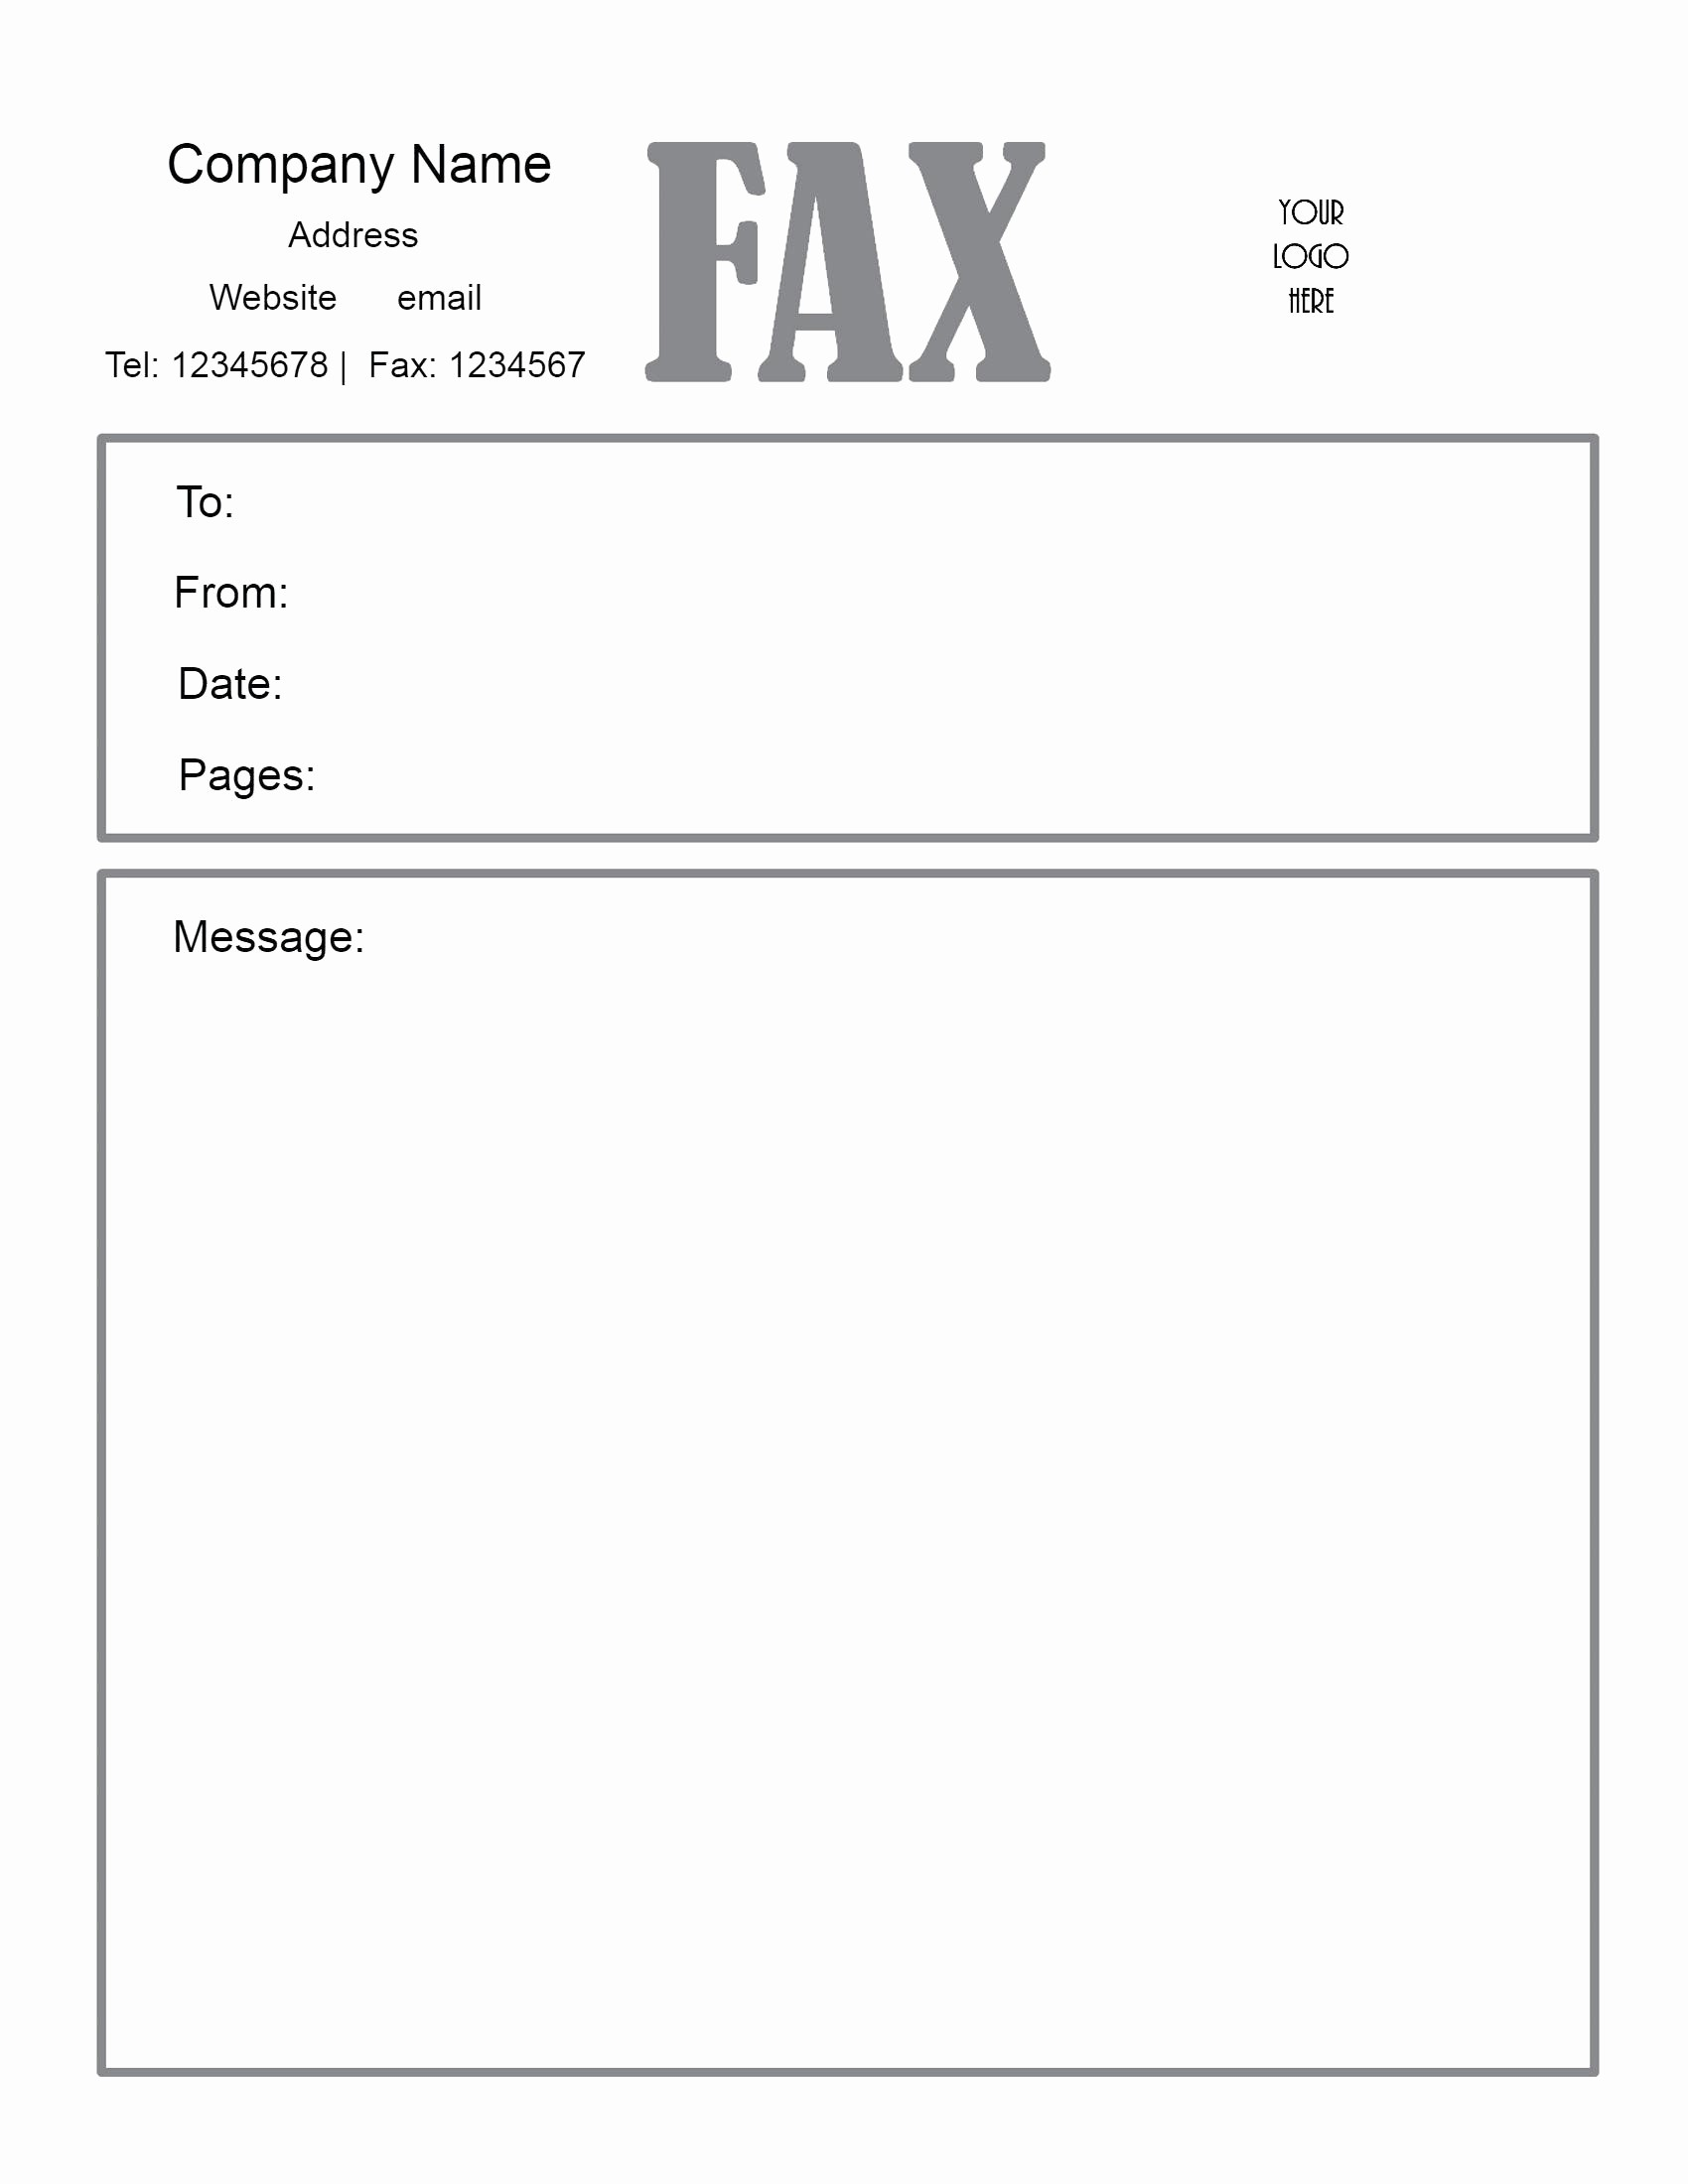 Printable Fax Cover Sheets Pdf Fresh Fax Cover Sheet Pdf Free Download